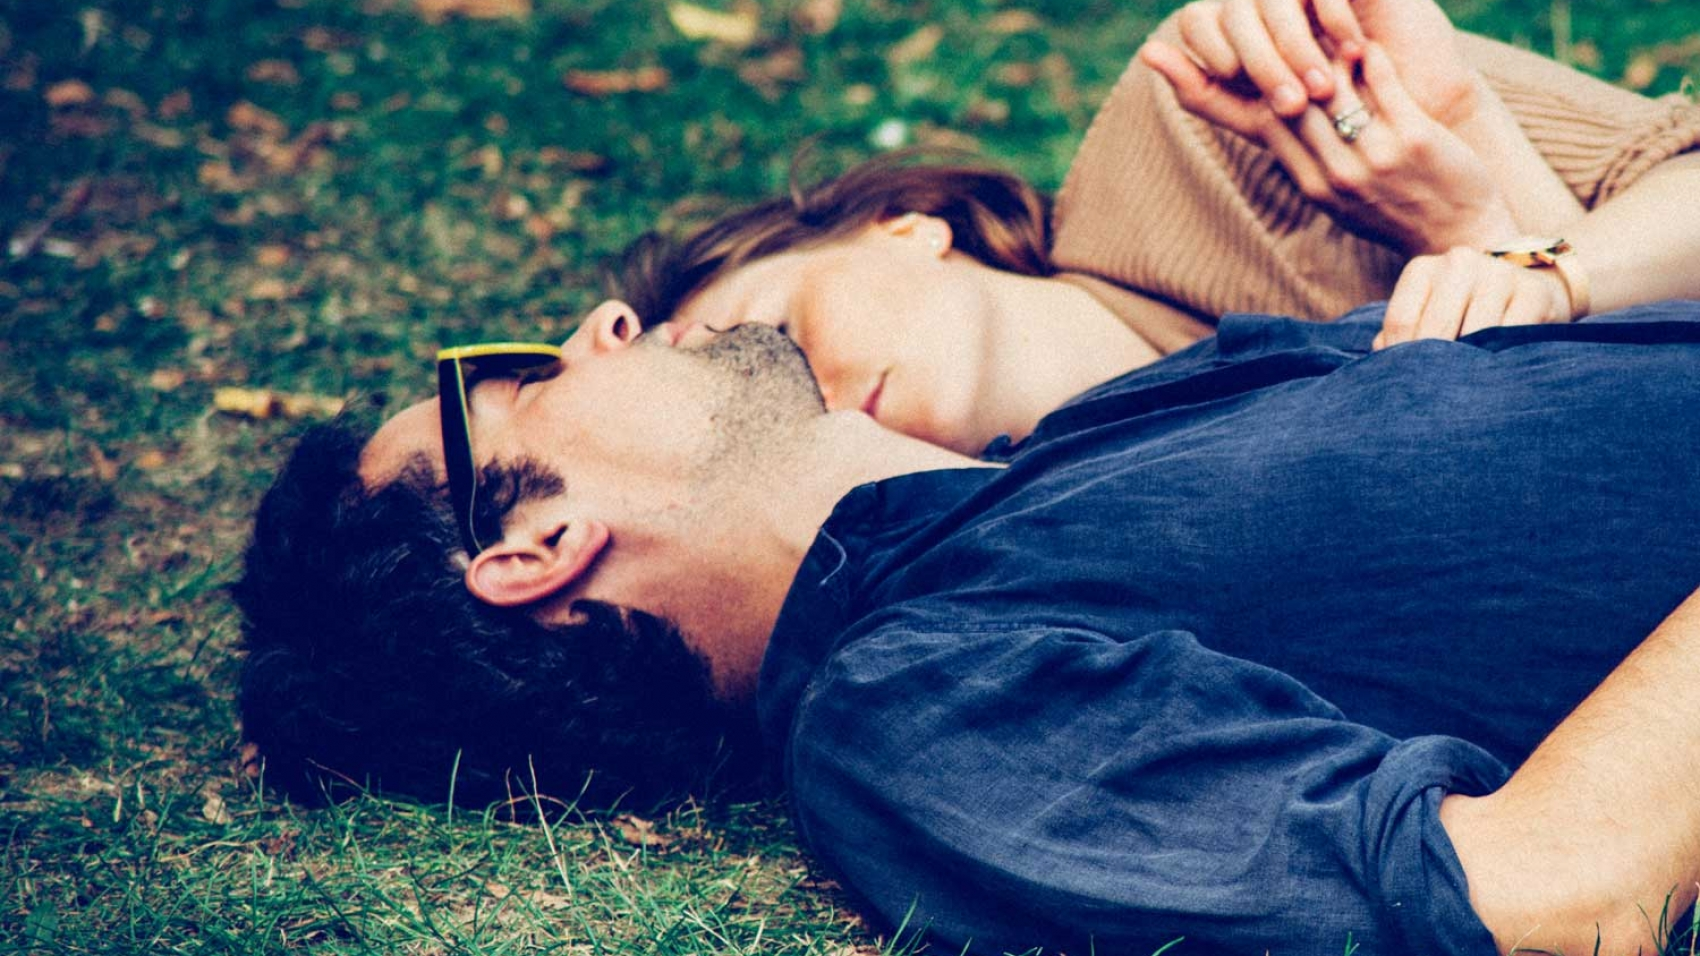 Couple relaxing in park in England